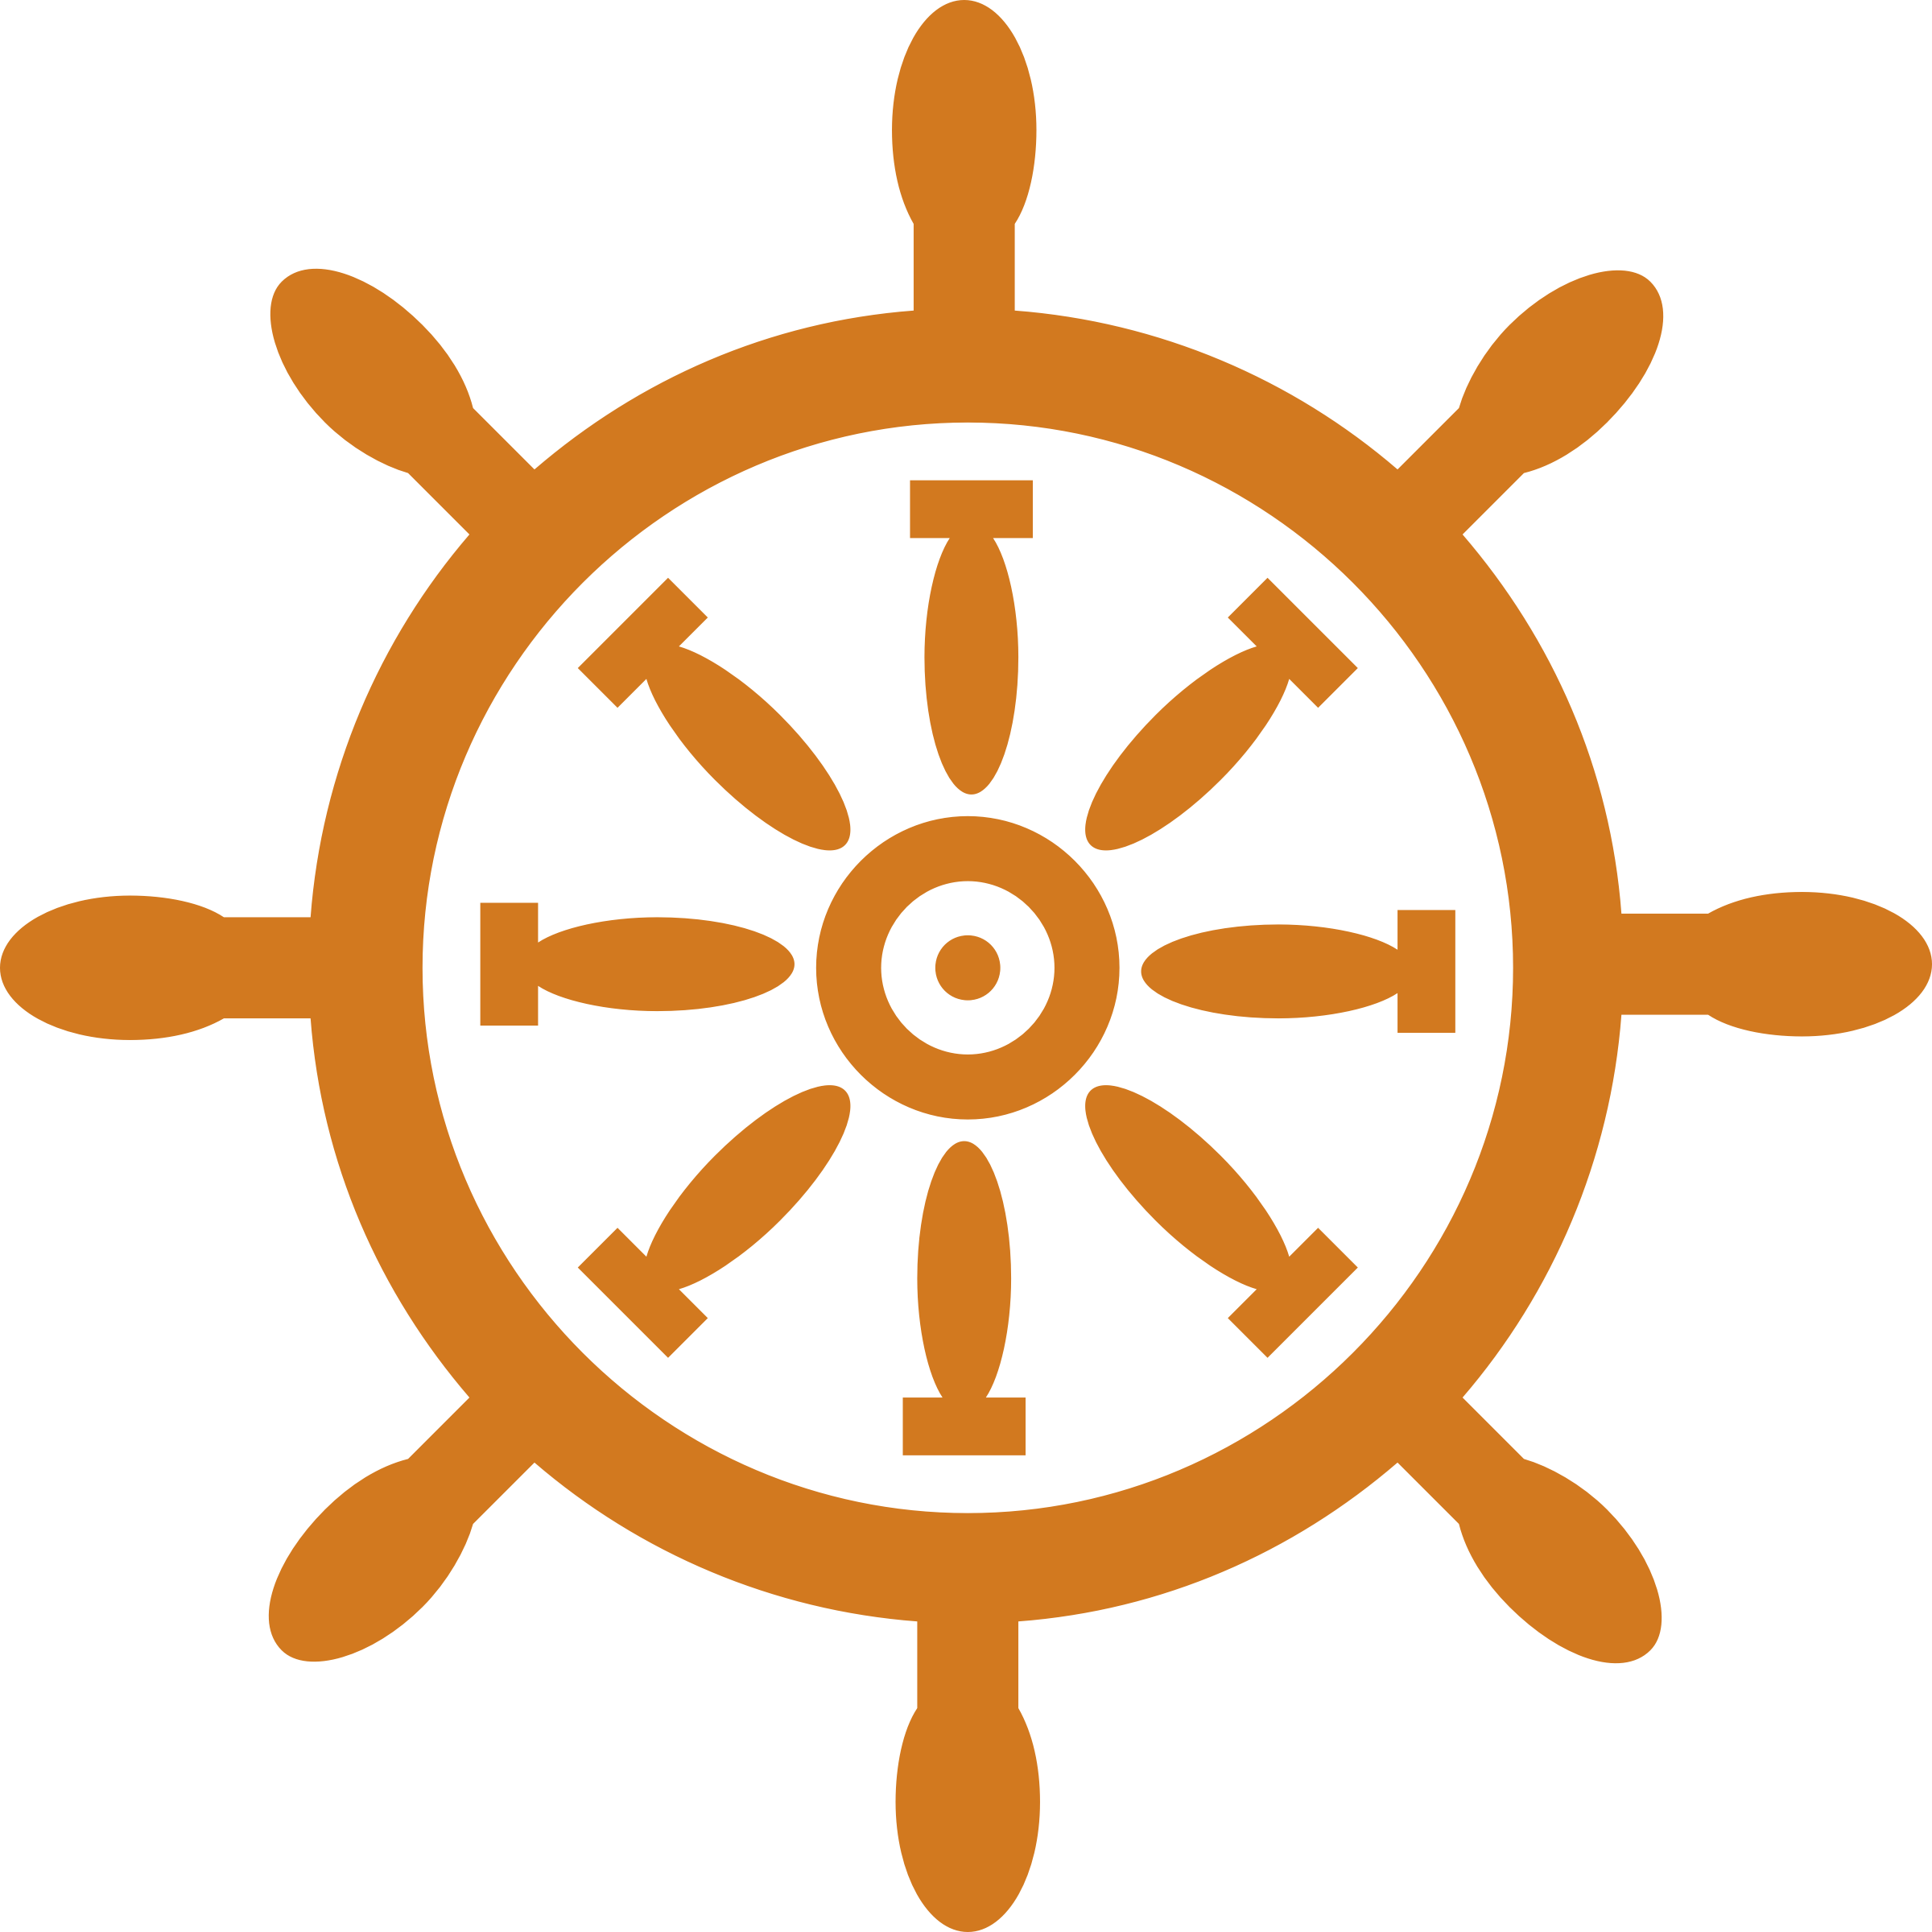 Ship steering wheel png. Captains icons free and